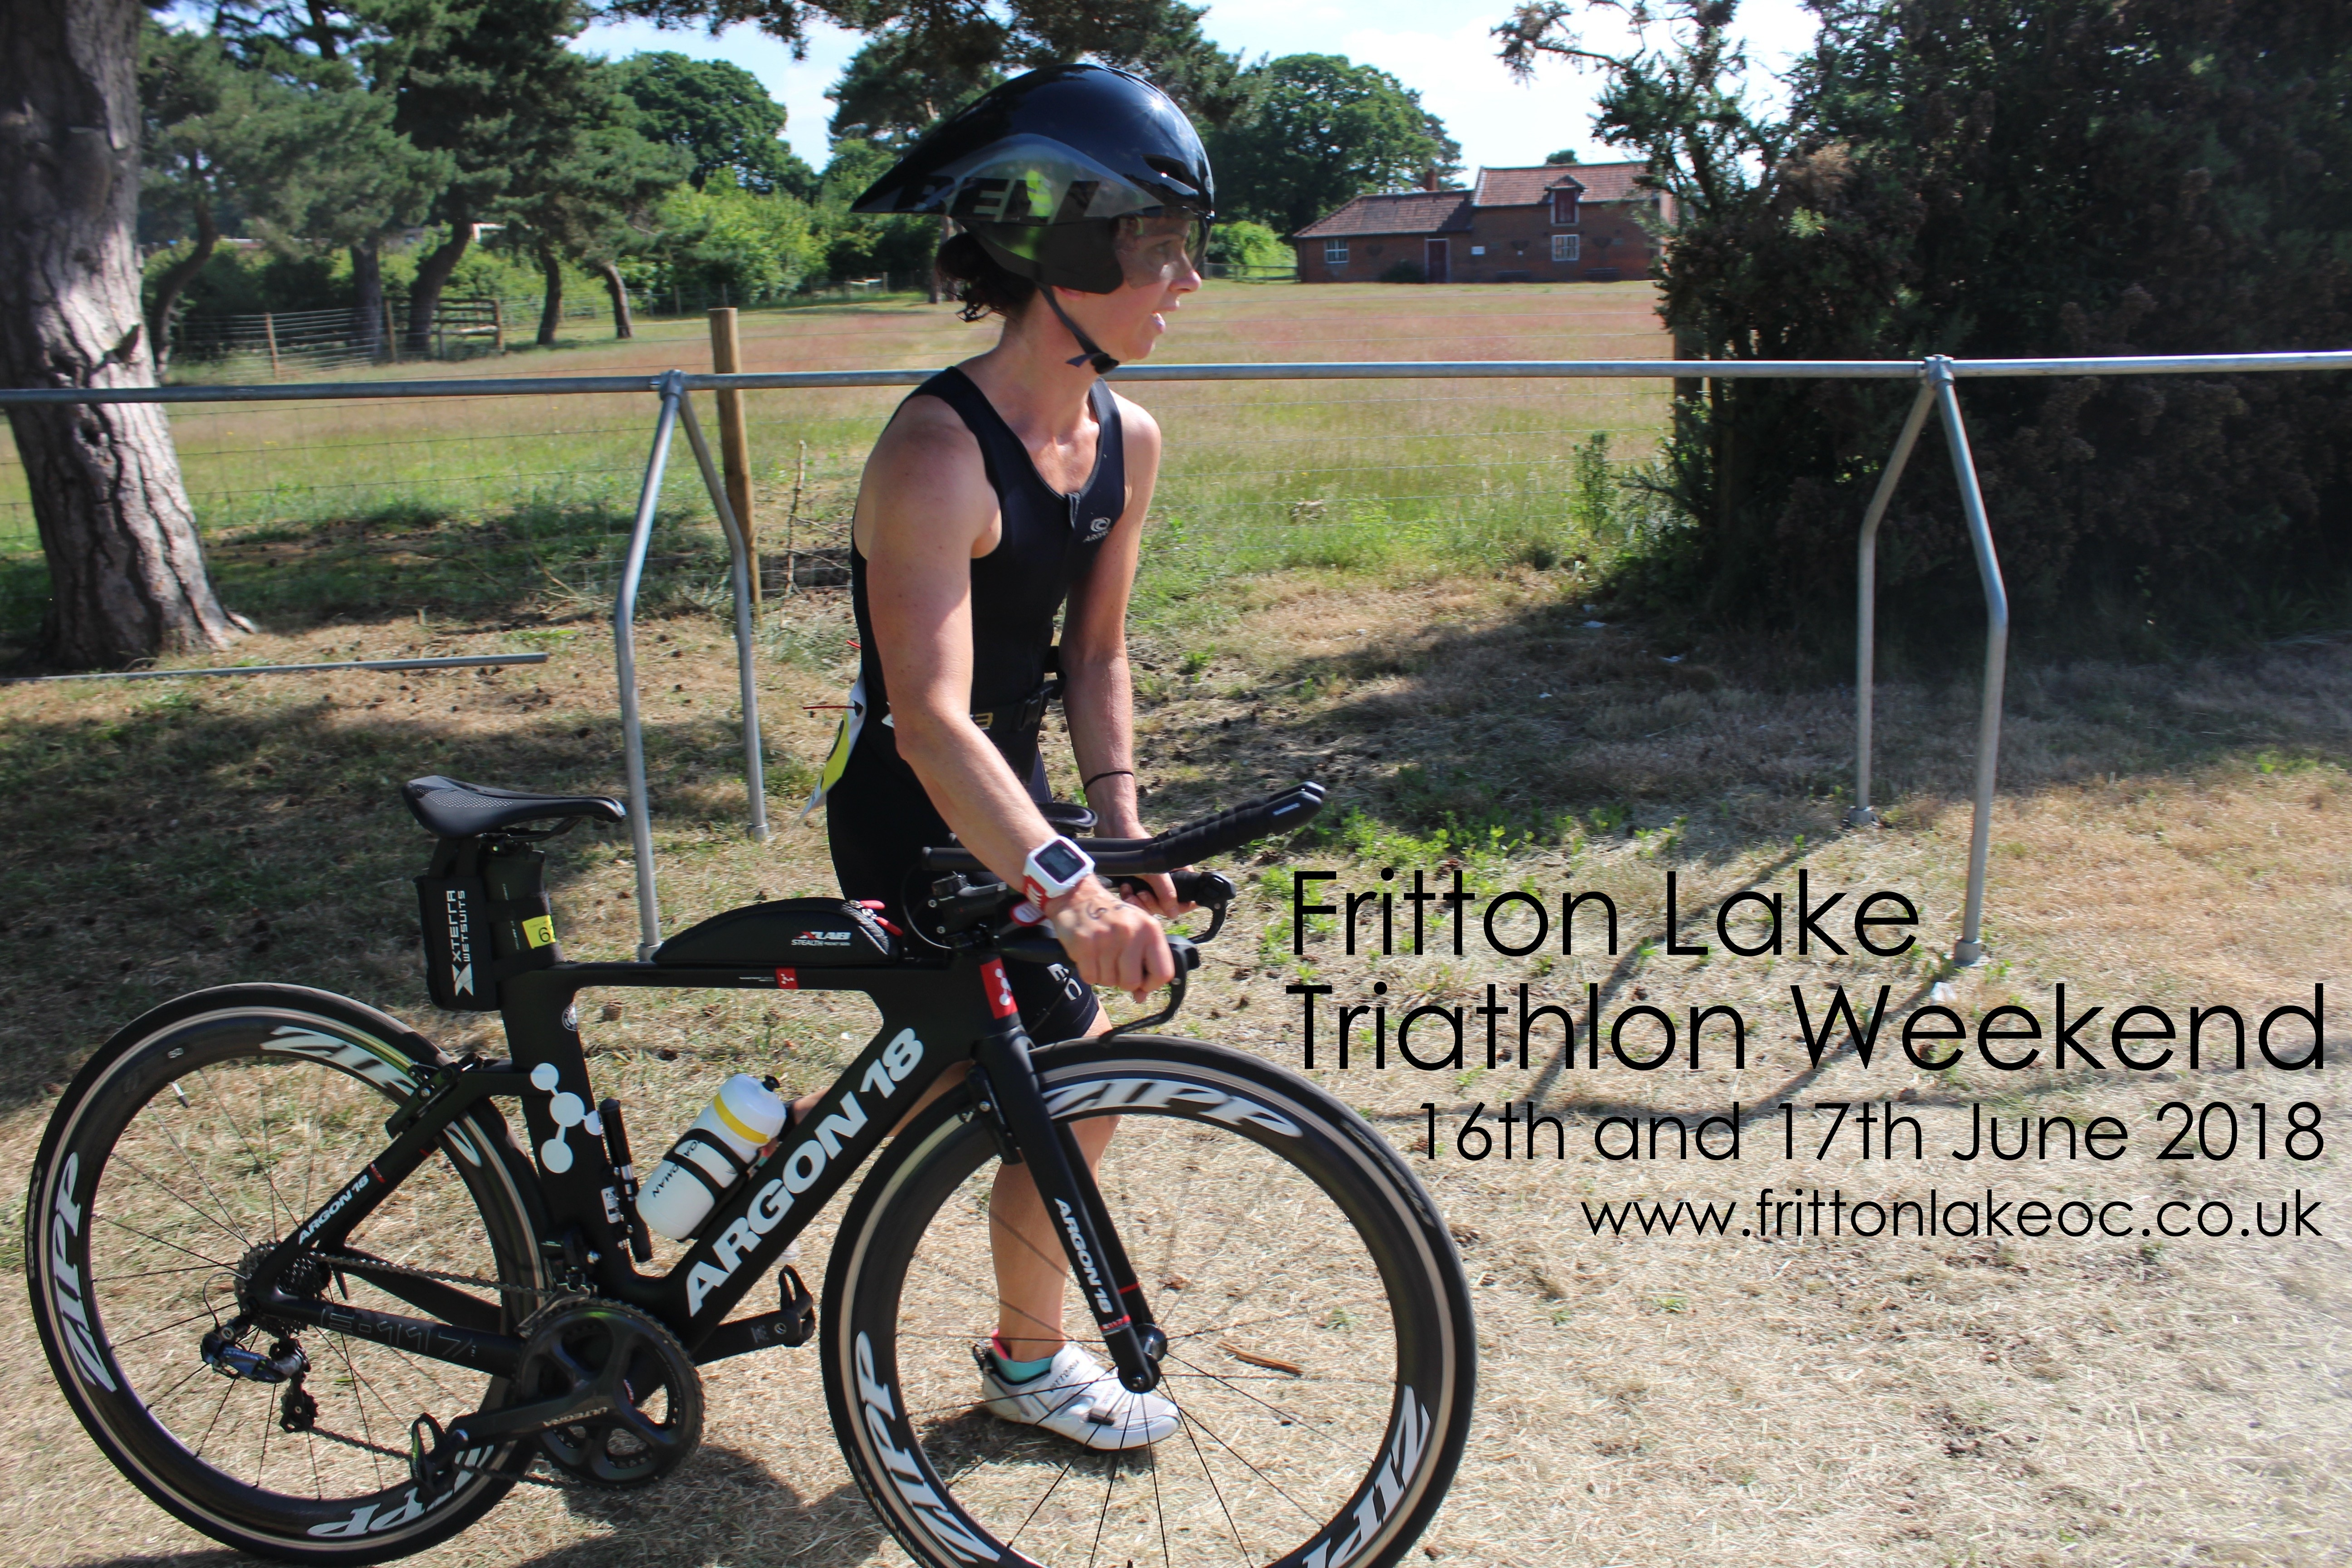 Fritton Lake Triathlon Weekend, Triple Tri Challenge - cover image